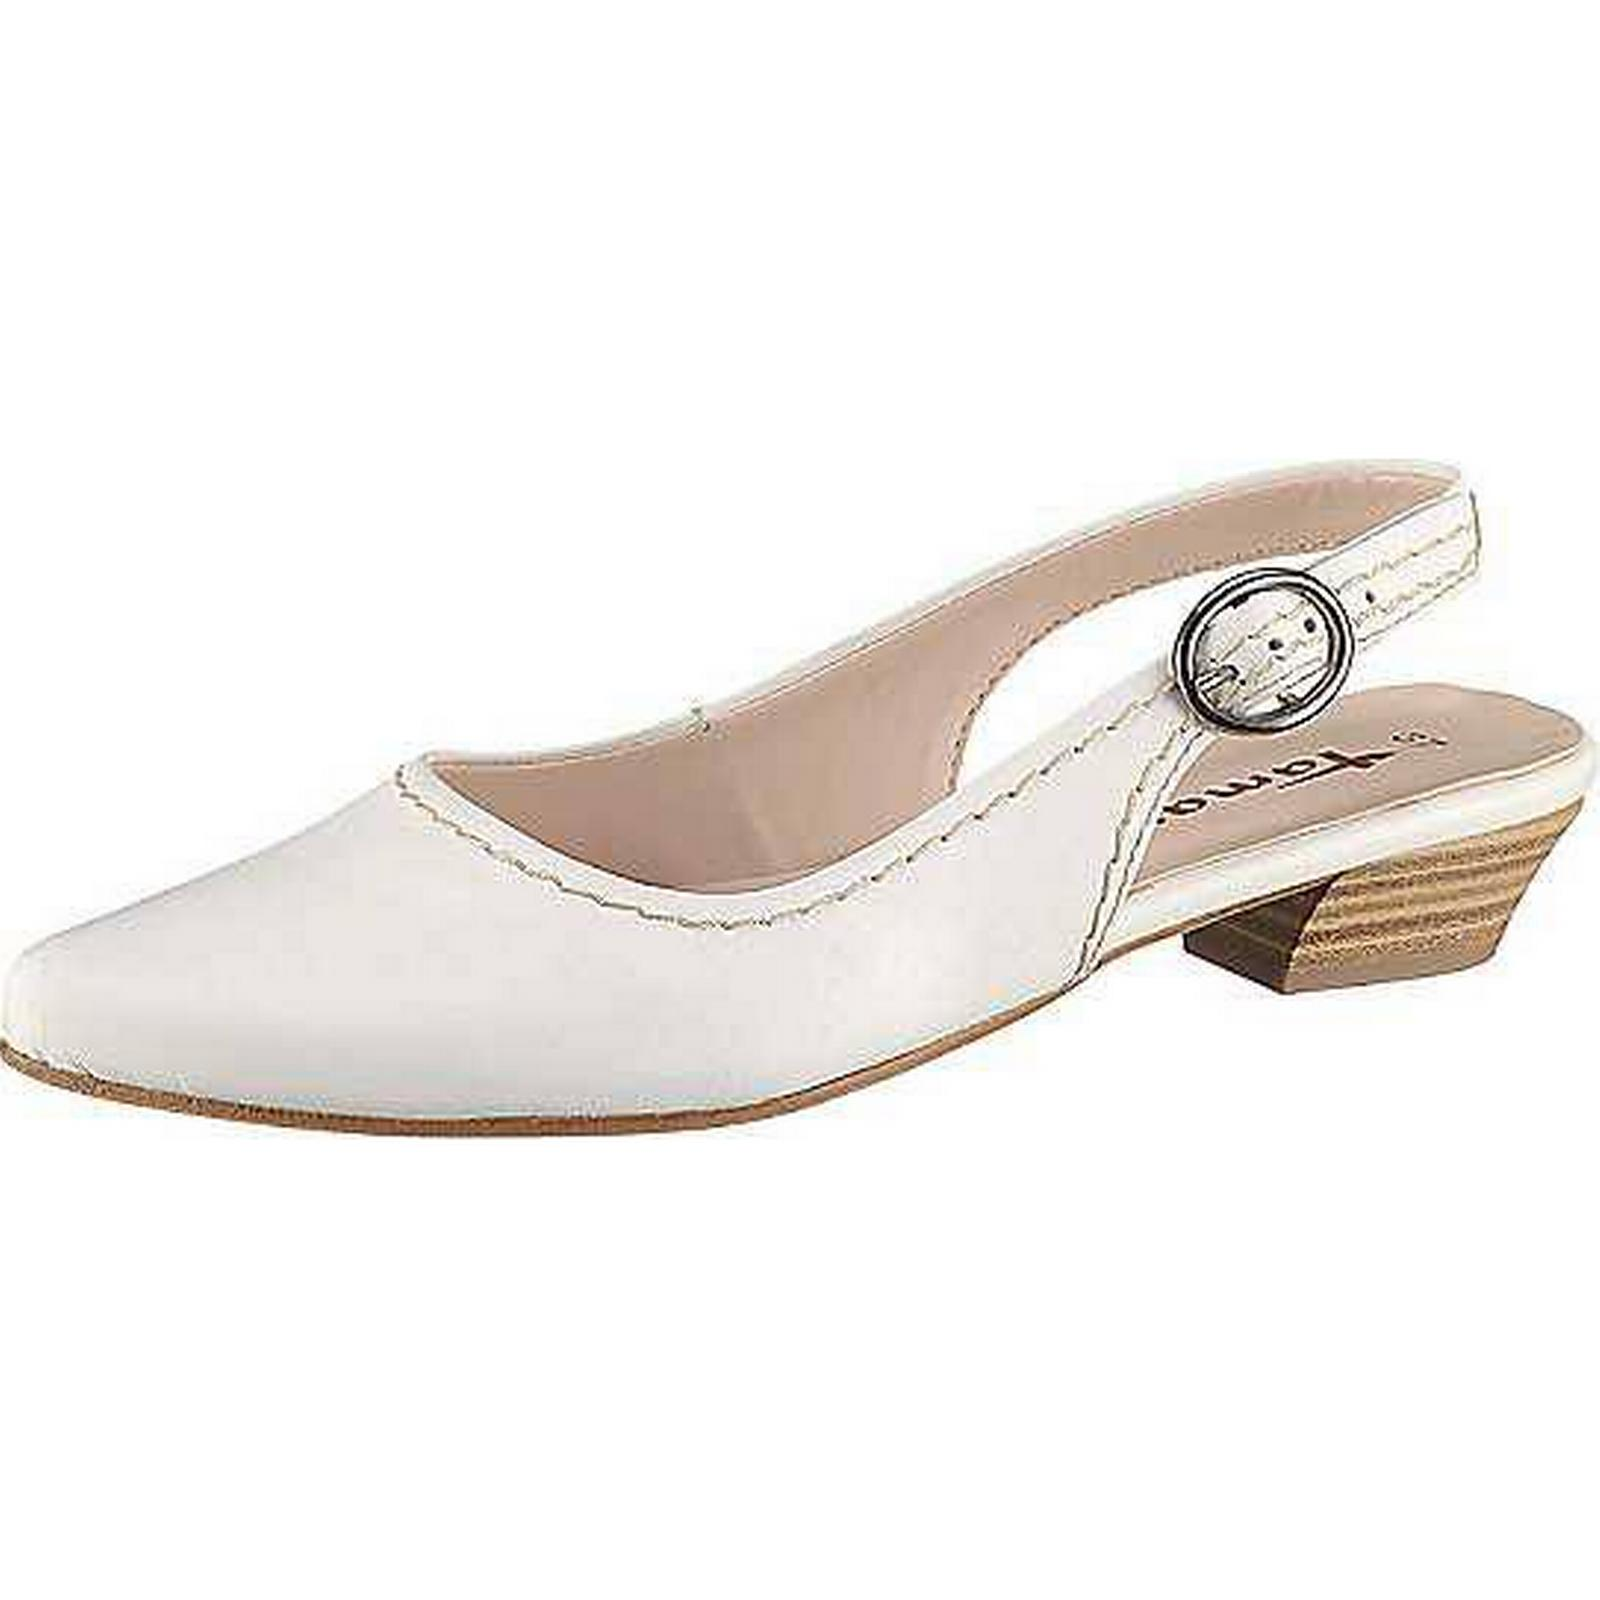 Tamaris Slingback Shoes Shoes Slingback by Tamaris-Mr/Ms-Fast delivery 9df3a2